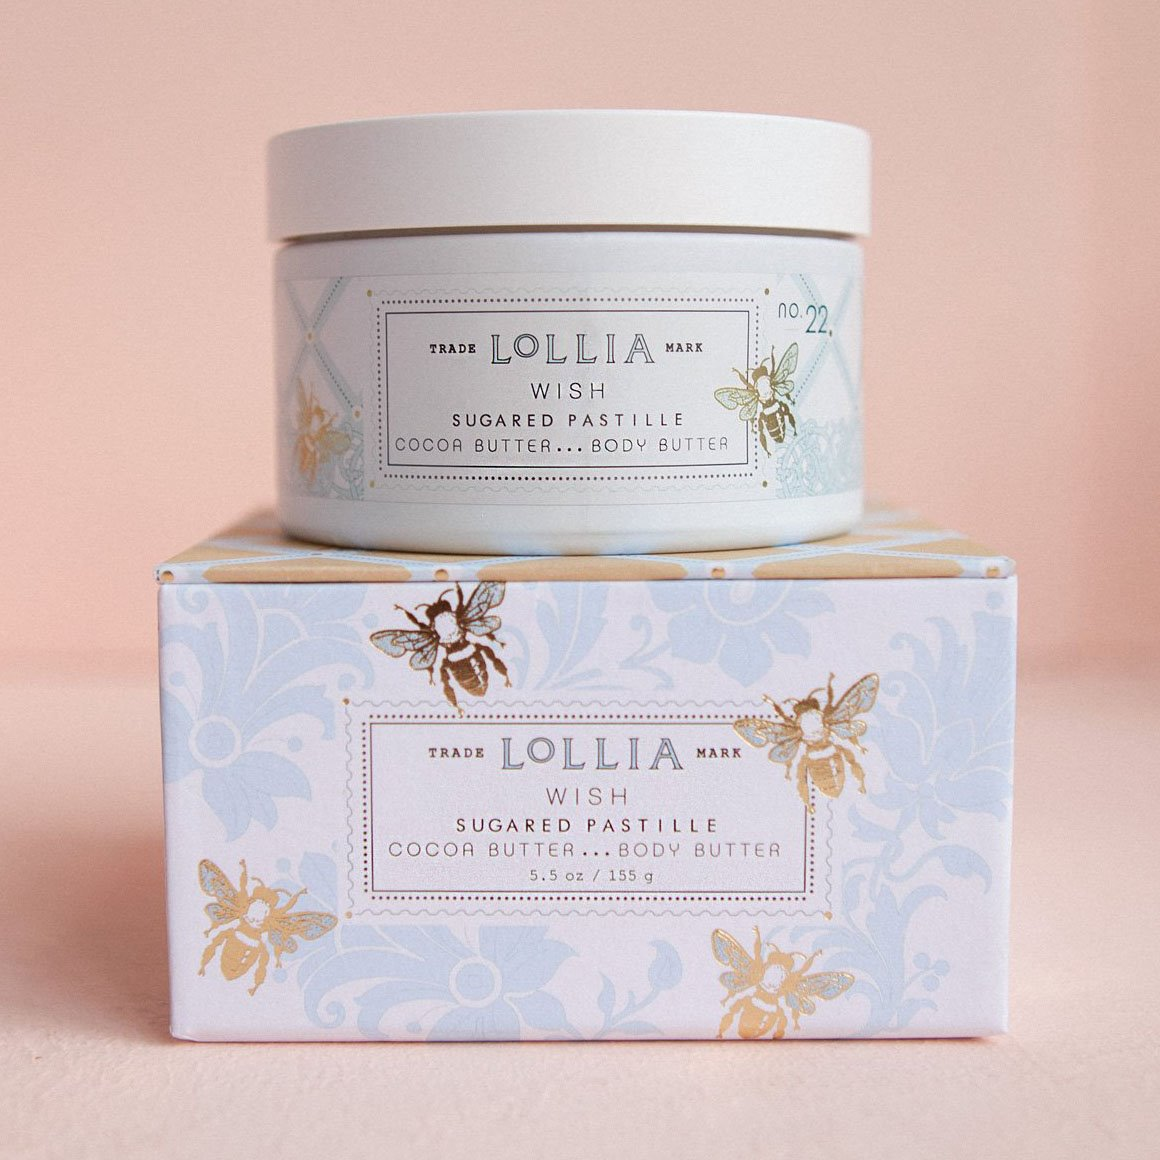 Lollia Wish No. 22 Whipped Body Butter